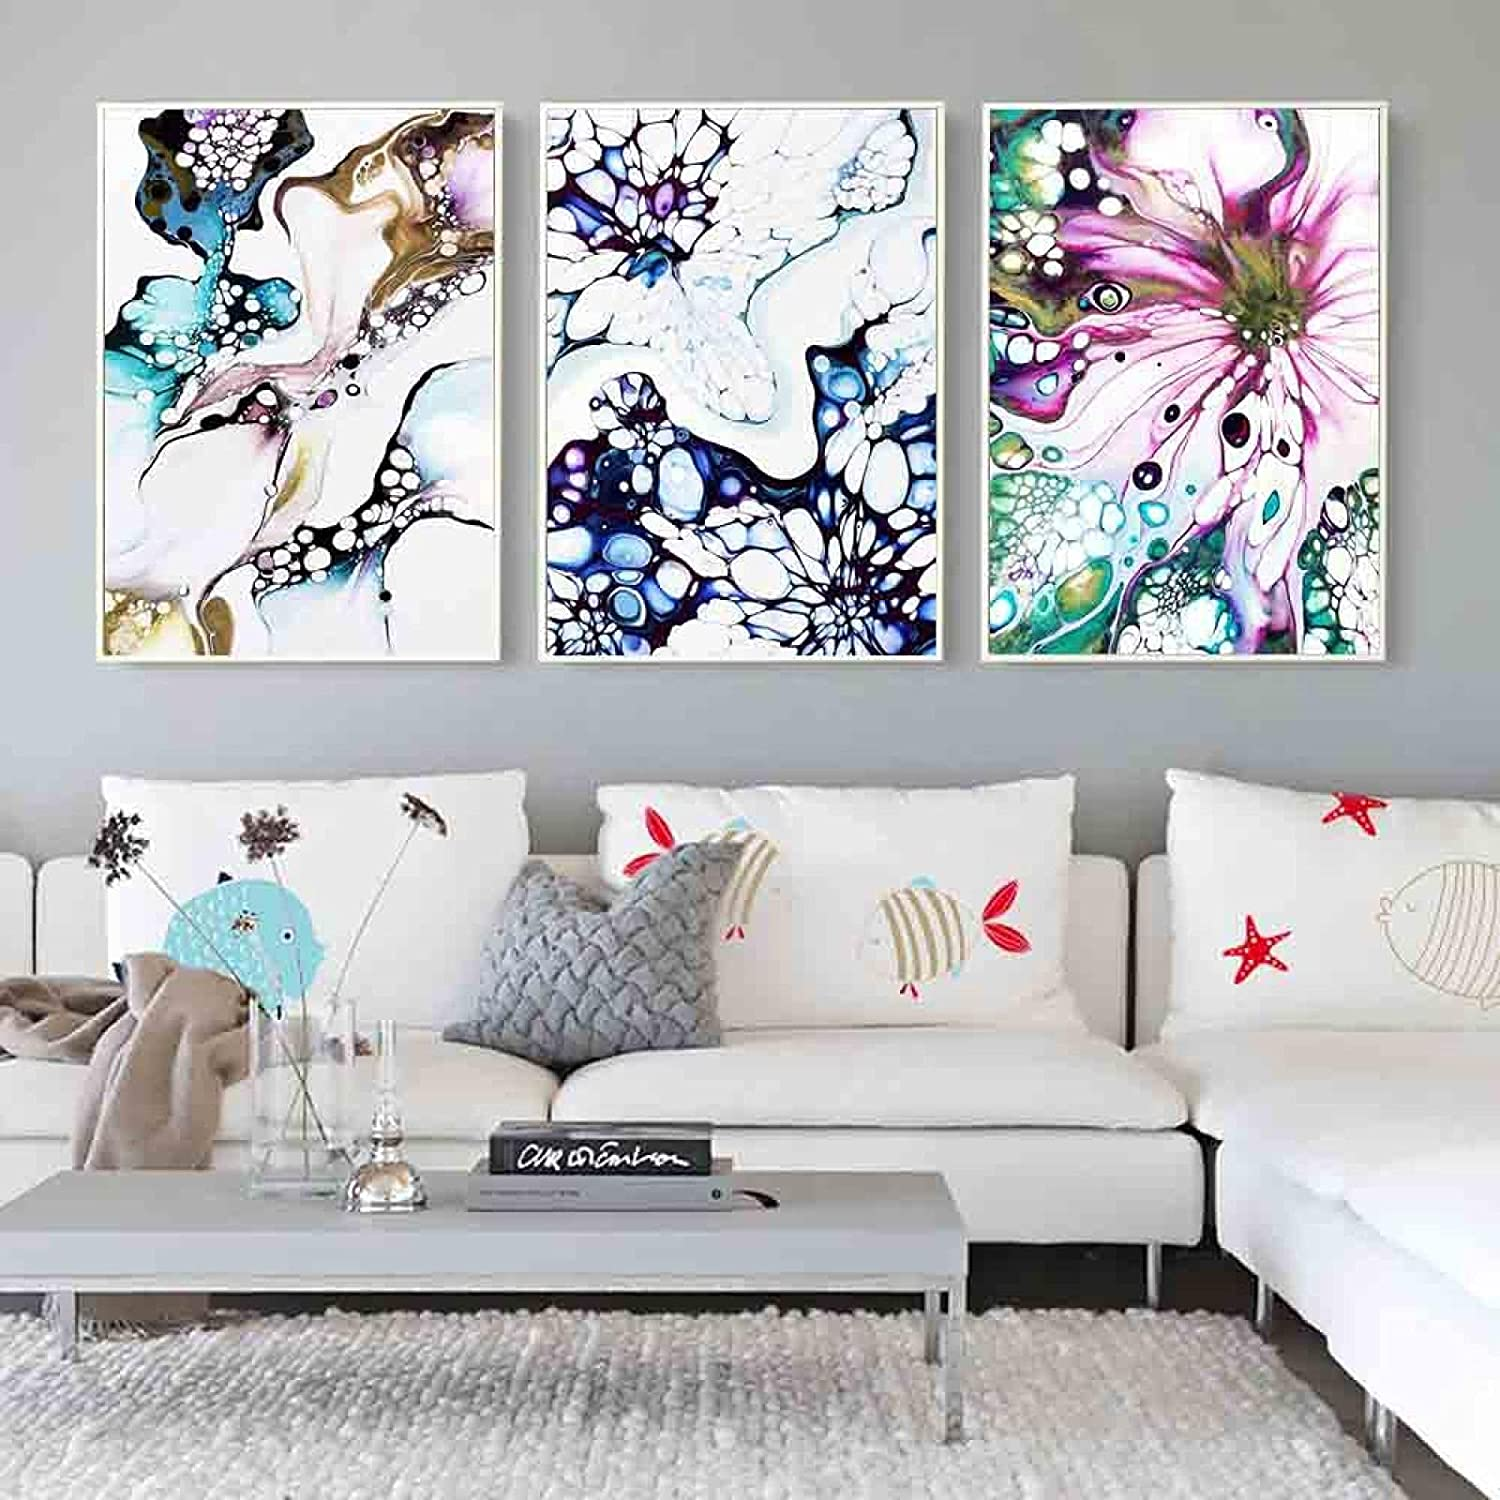 corridor office Tulsa Mall home decoration mural abstract ce color shopping painting